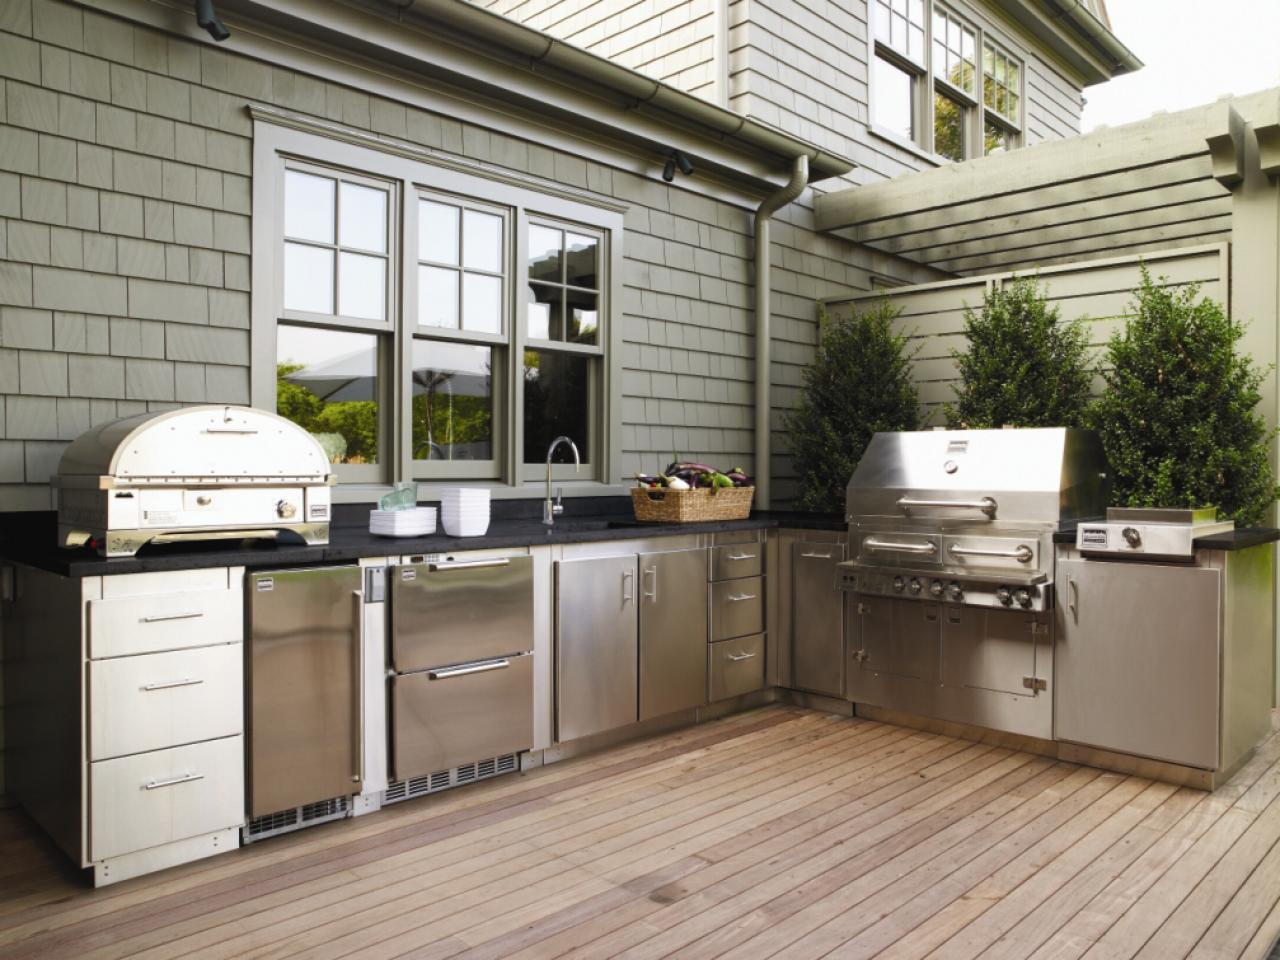 Outdoor Küche Diy These Diy Outdoor Kitchen Plans Turn Your Backyard Into